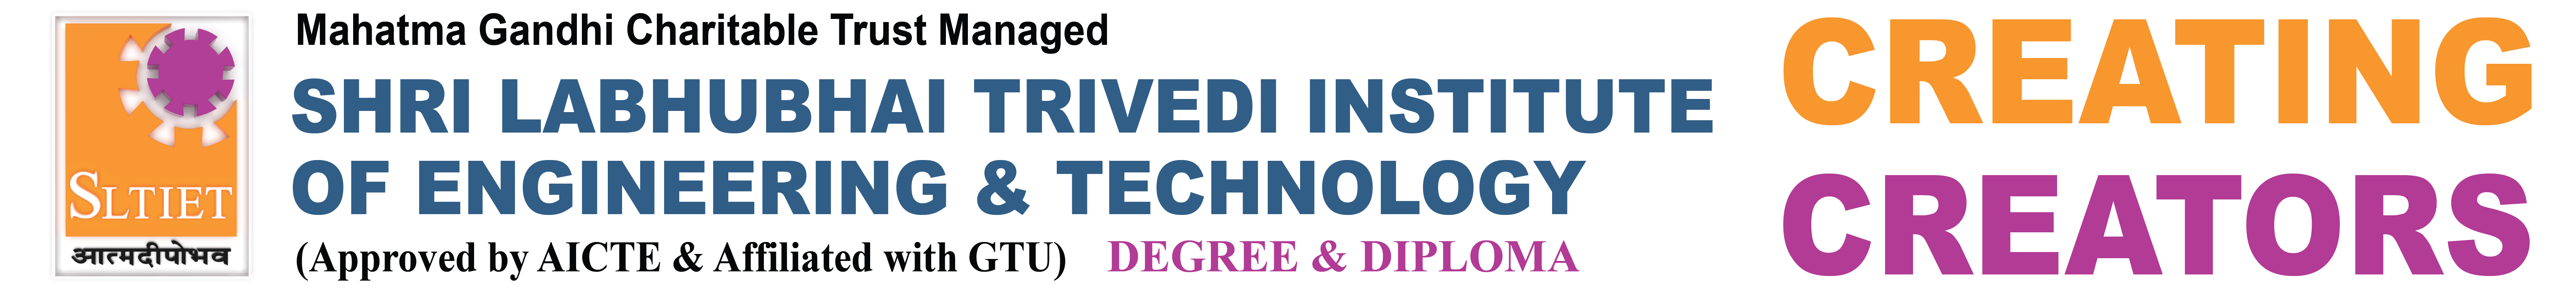 Shree Labhubhai Trivedi Institute of Engineering